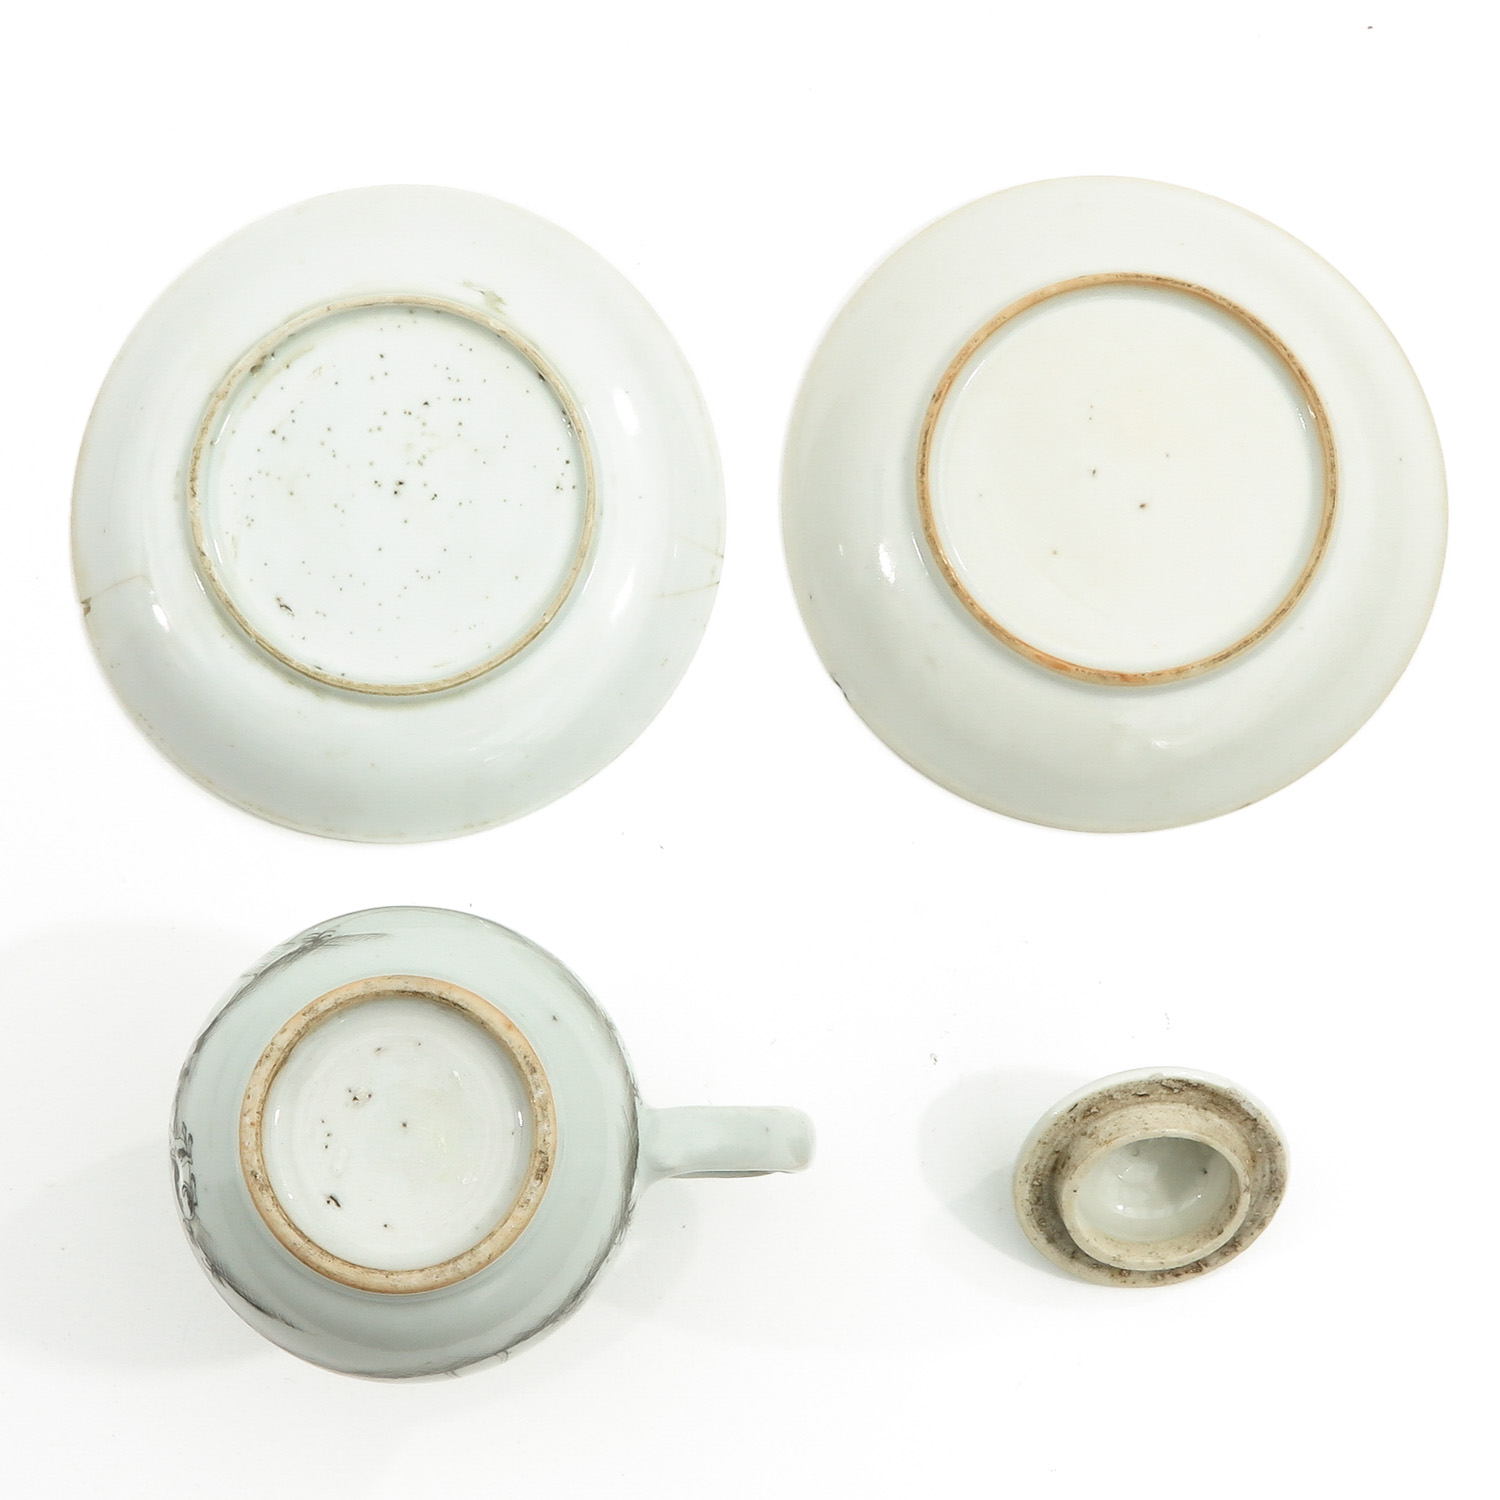 A Diverse Collection of Porcelain - Image 6 of 10